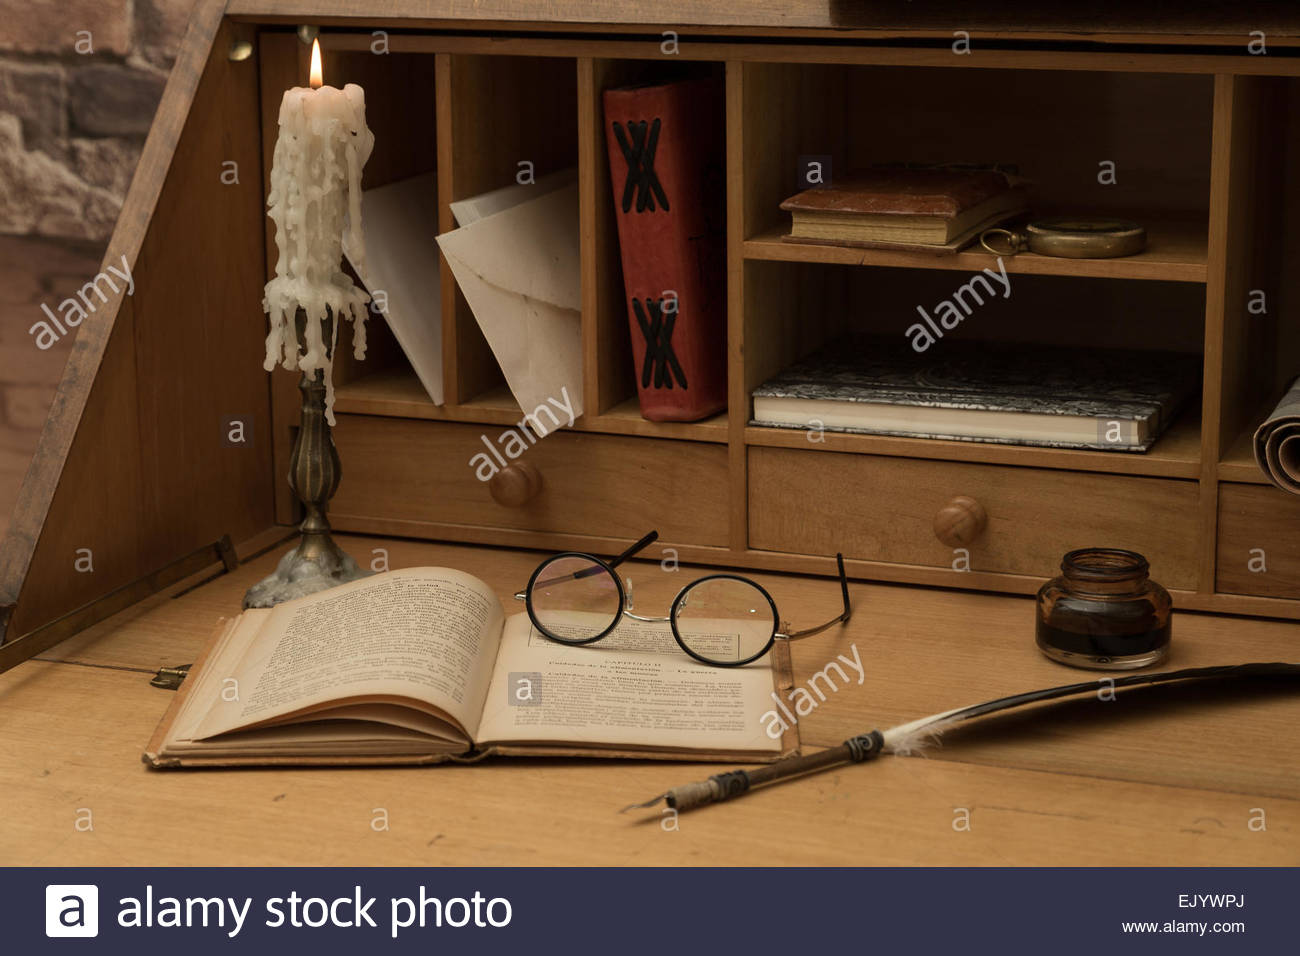 Antique desk with his pen and old books - Antique Desk With His Pen And Old Books Stock Photo: 80518218 - Alamy